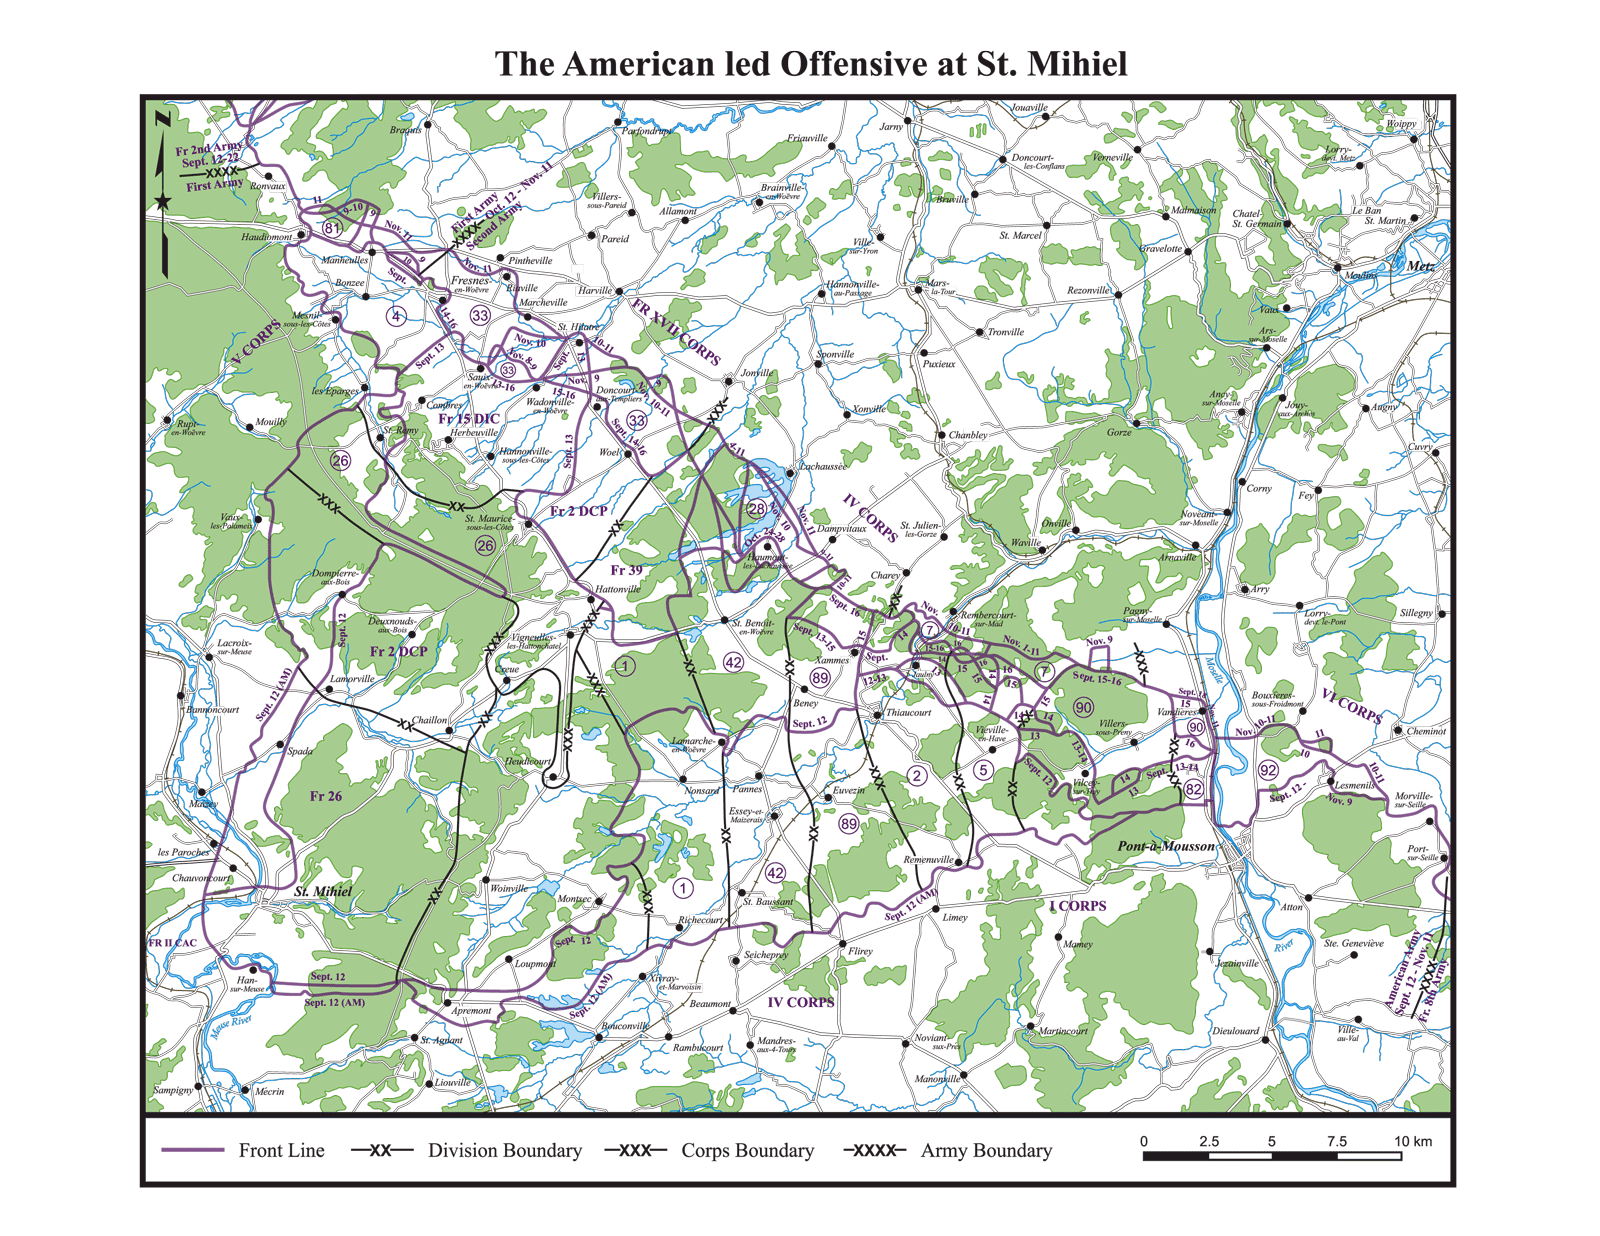 The American led Offensive at St. Mihiel